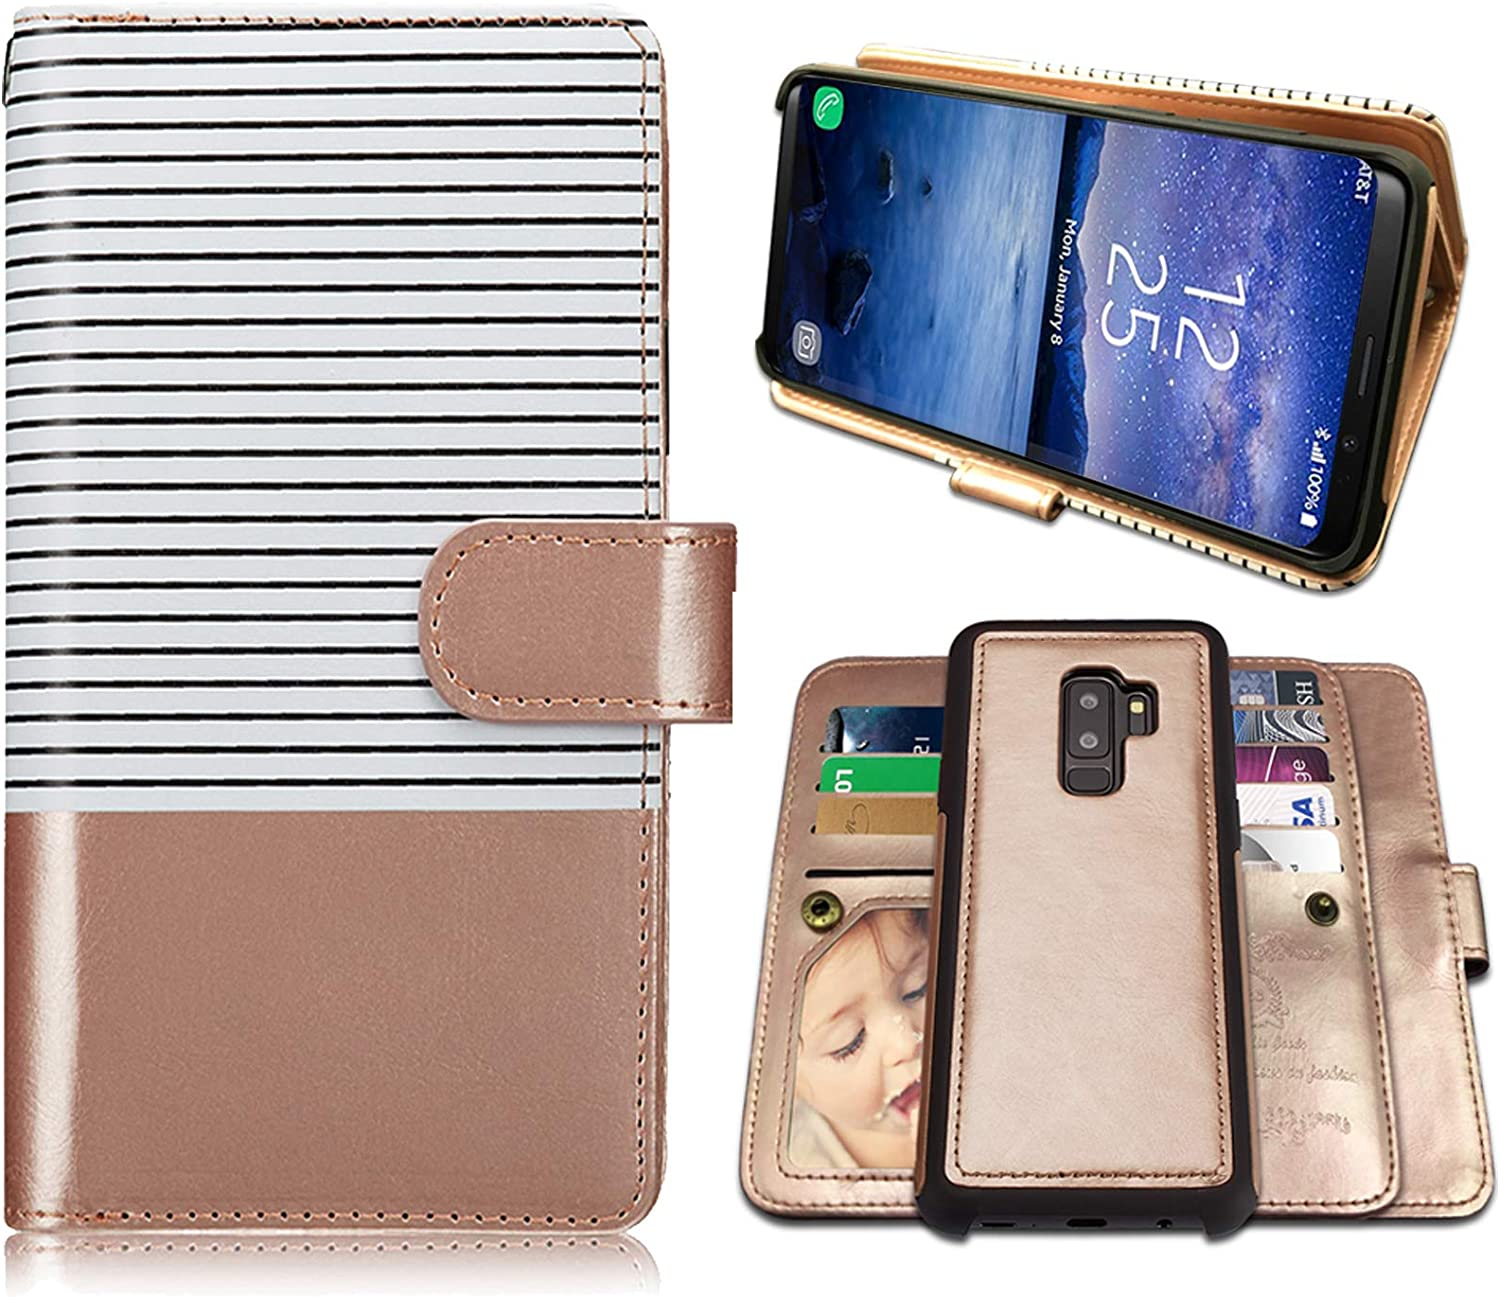 Galaxy S9 Plus Cases, Magnetic Detachable Lanyard Wallet Case with 9 Card Slots Holder, CASEOWL 2 in 1 Premium Leather Removable TPU Case Flip Wallet Case Cover for Galaxy S9 Plus (White&Rose Gold)